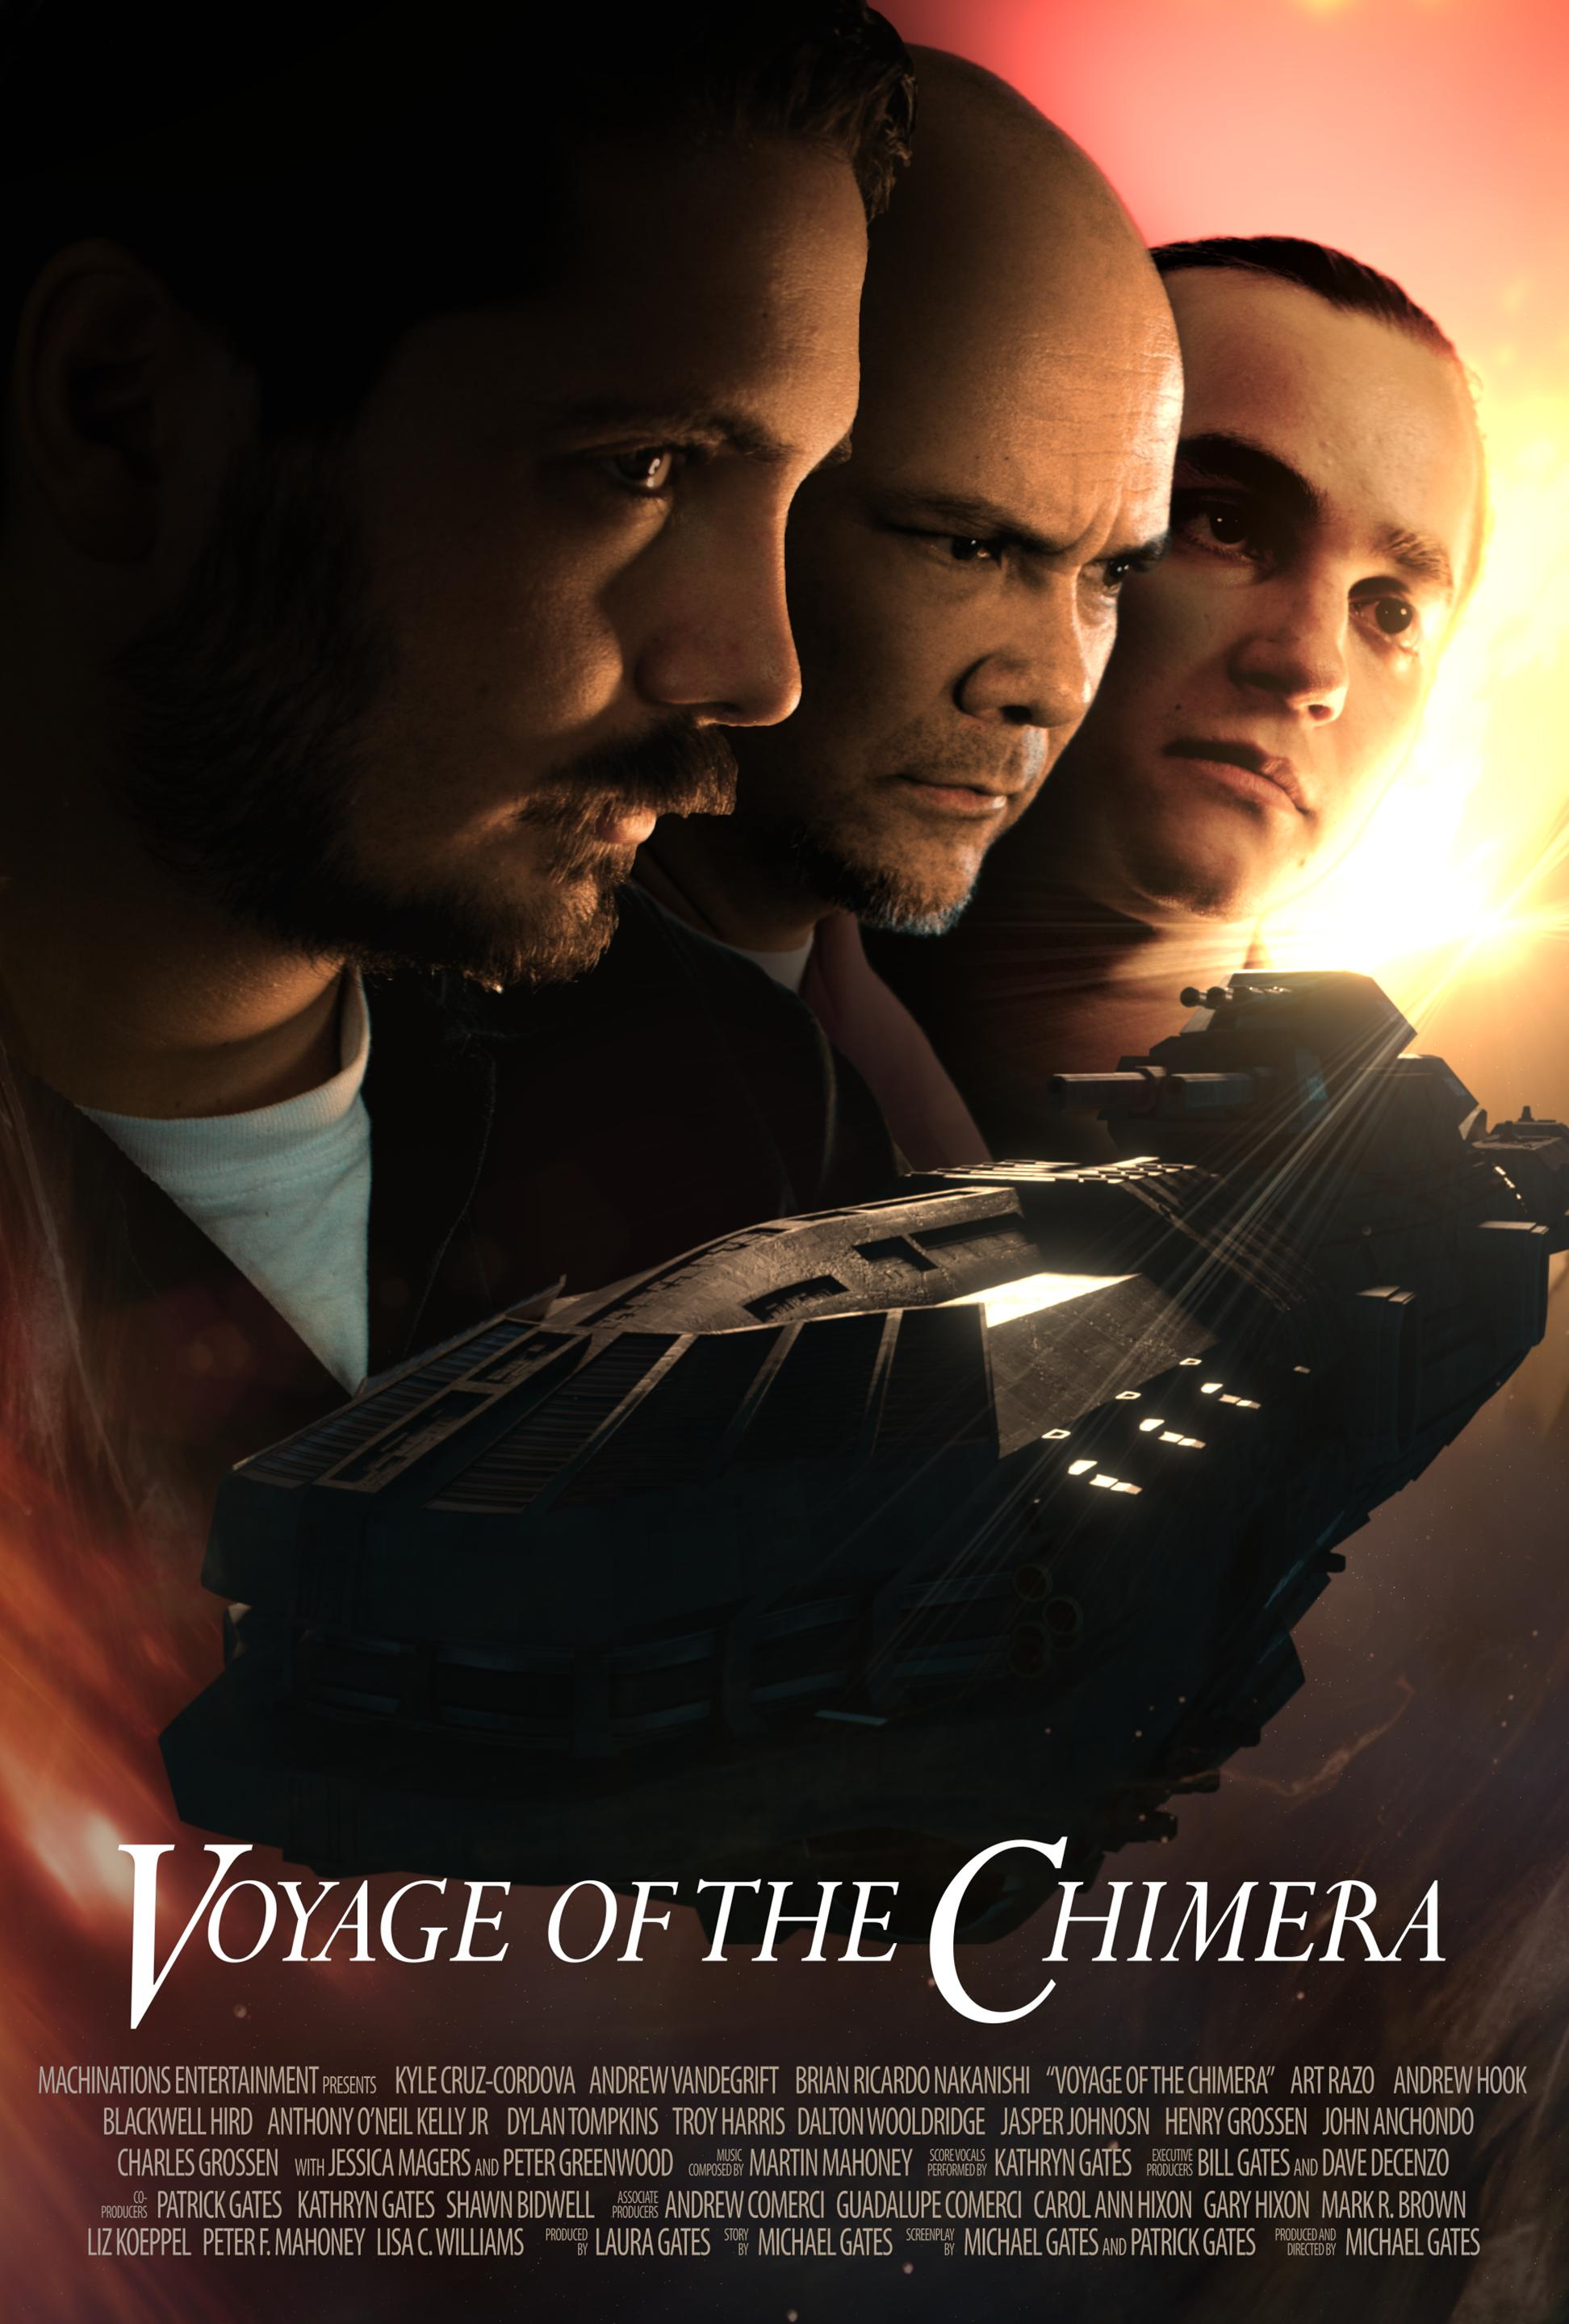 Voyage of the Chimera hd on soap2day